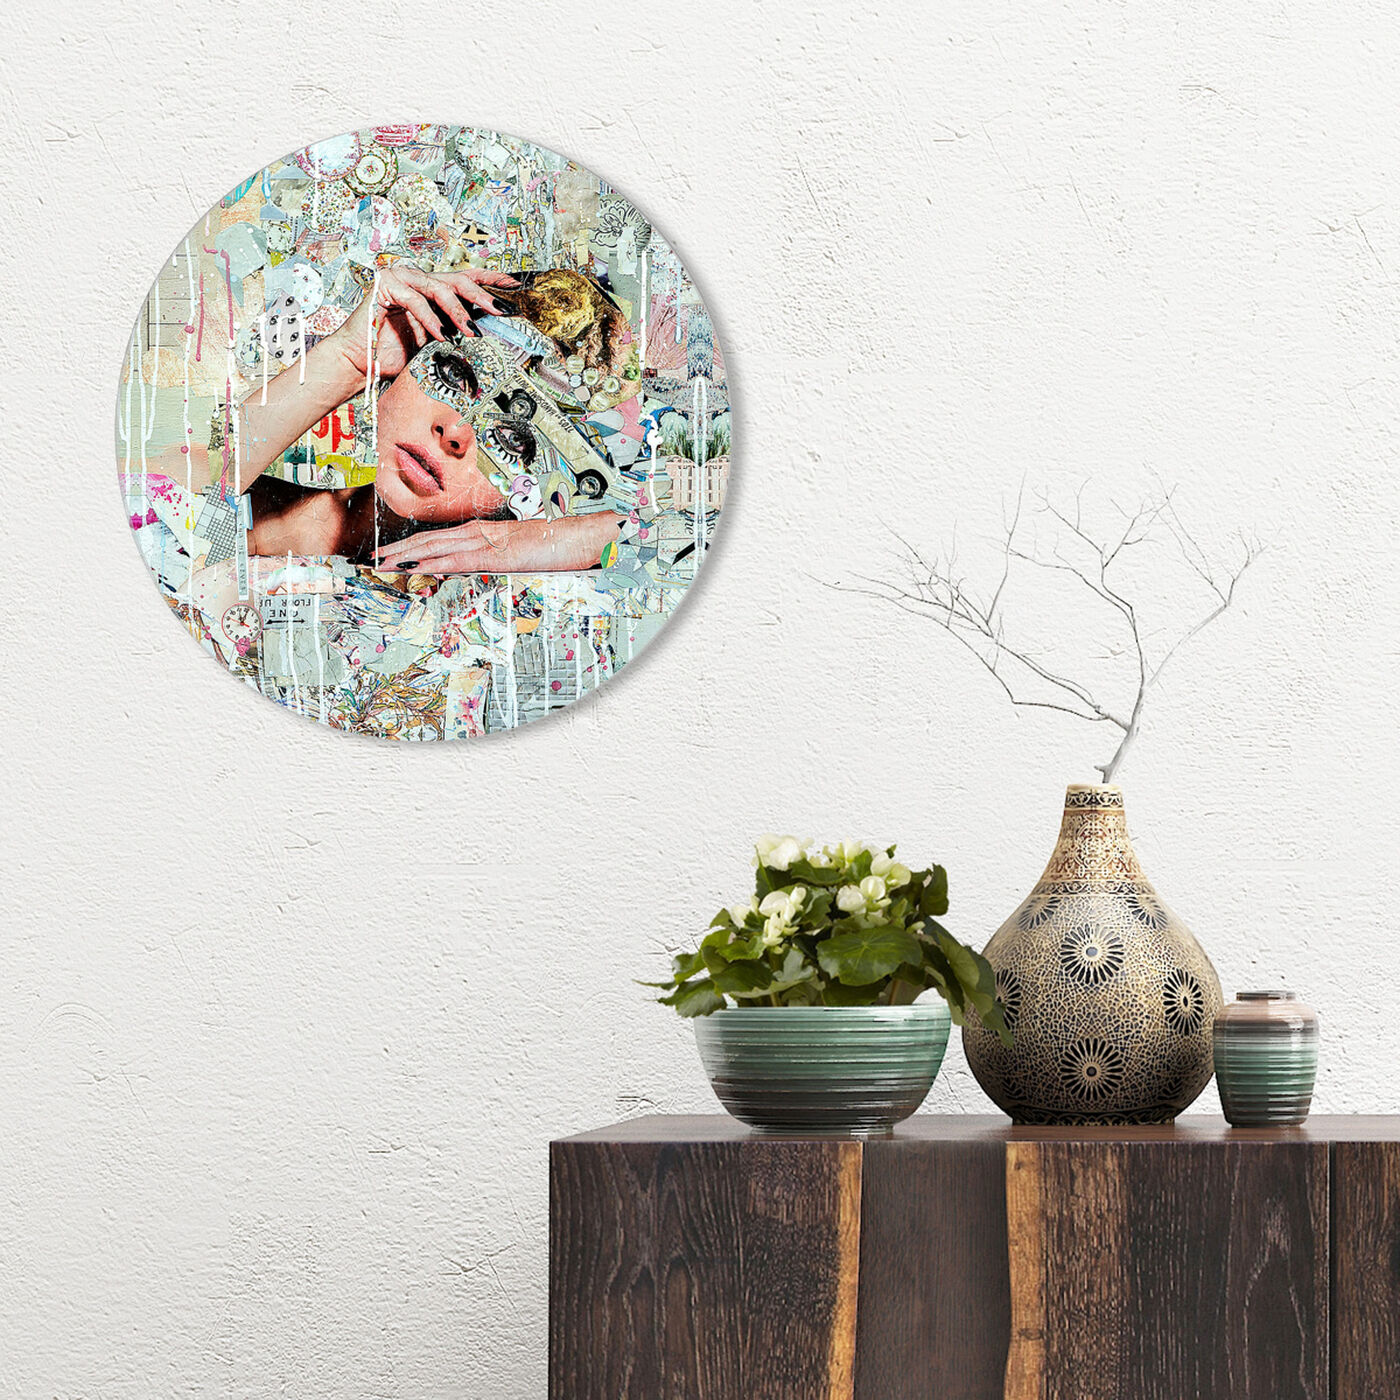 Hanging view of Katy Hirschfeld - Handsome Youths Circle Art featuring fashion and glam and portraits art.